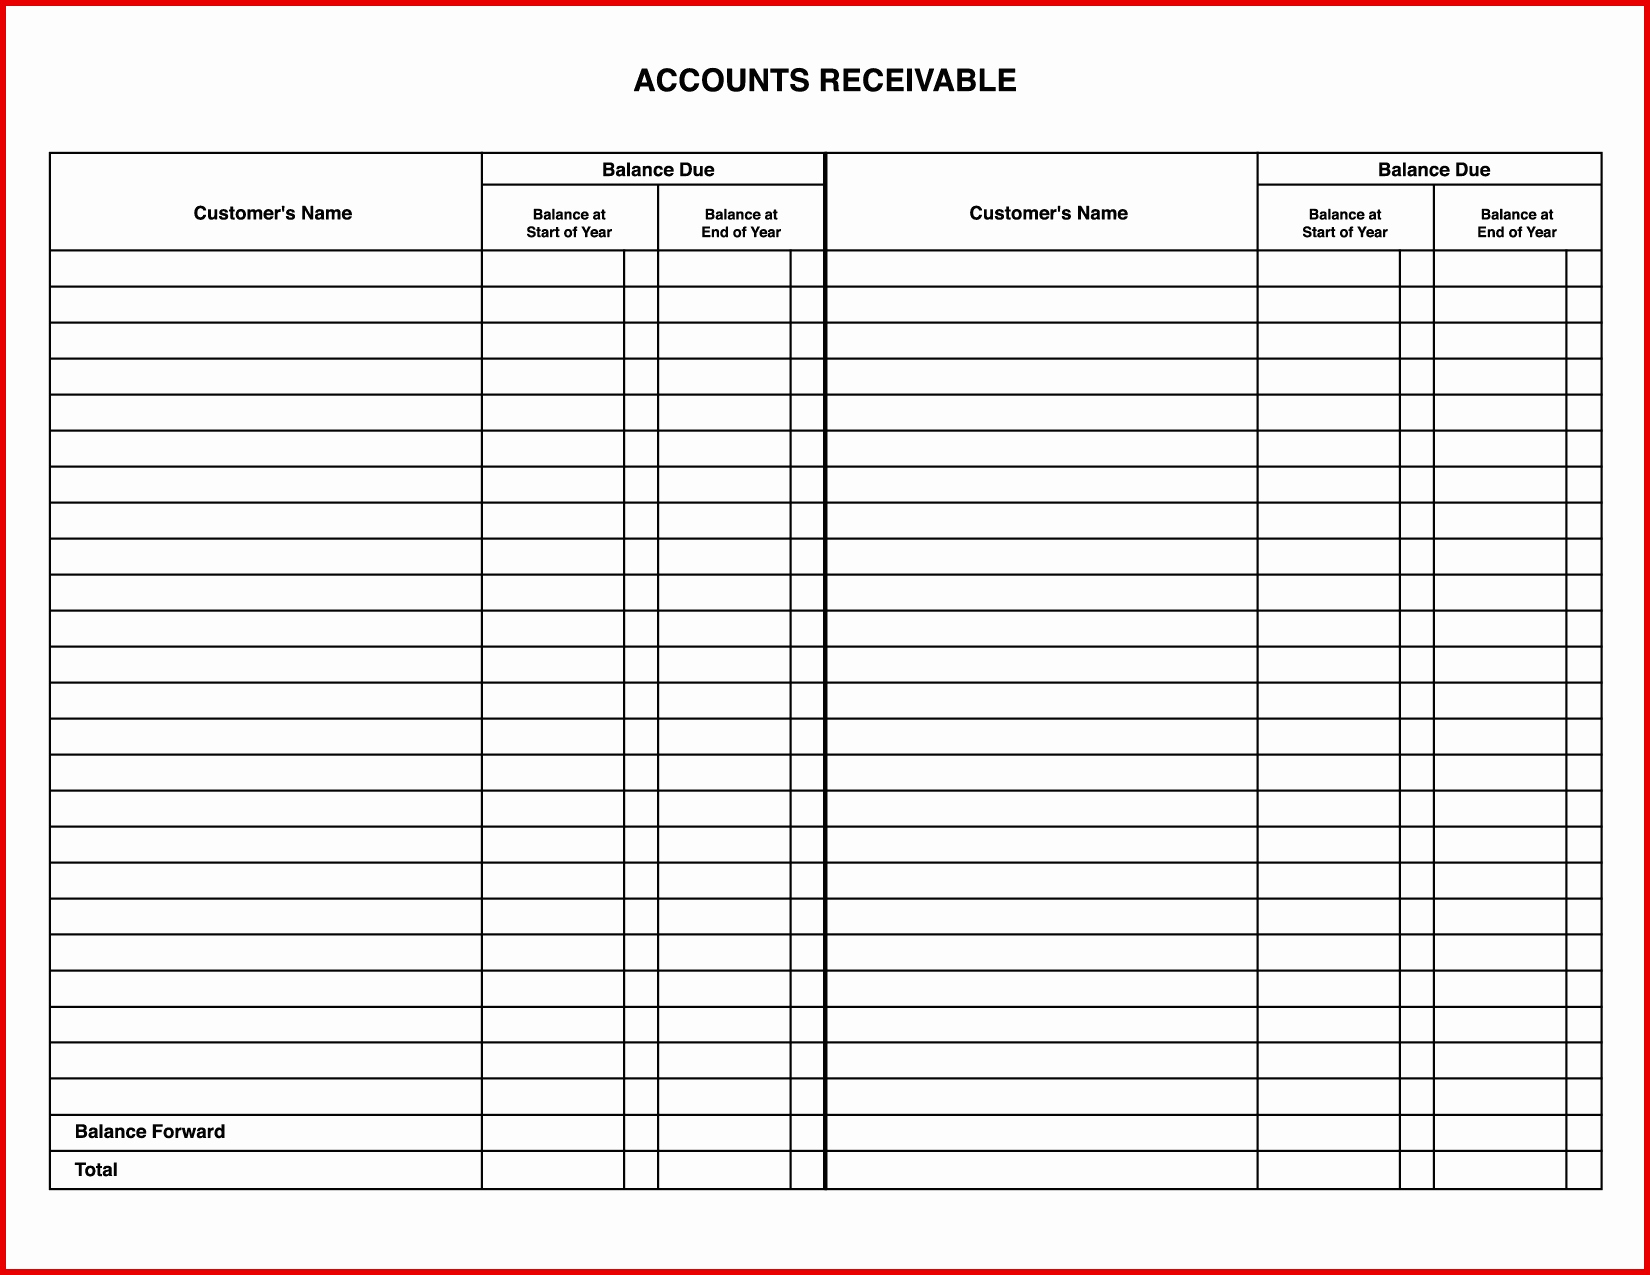 Probate Accounting Template Excel Beautiful Probate